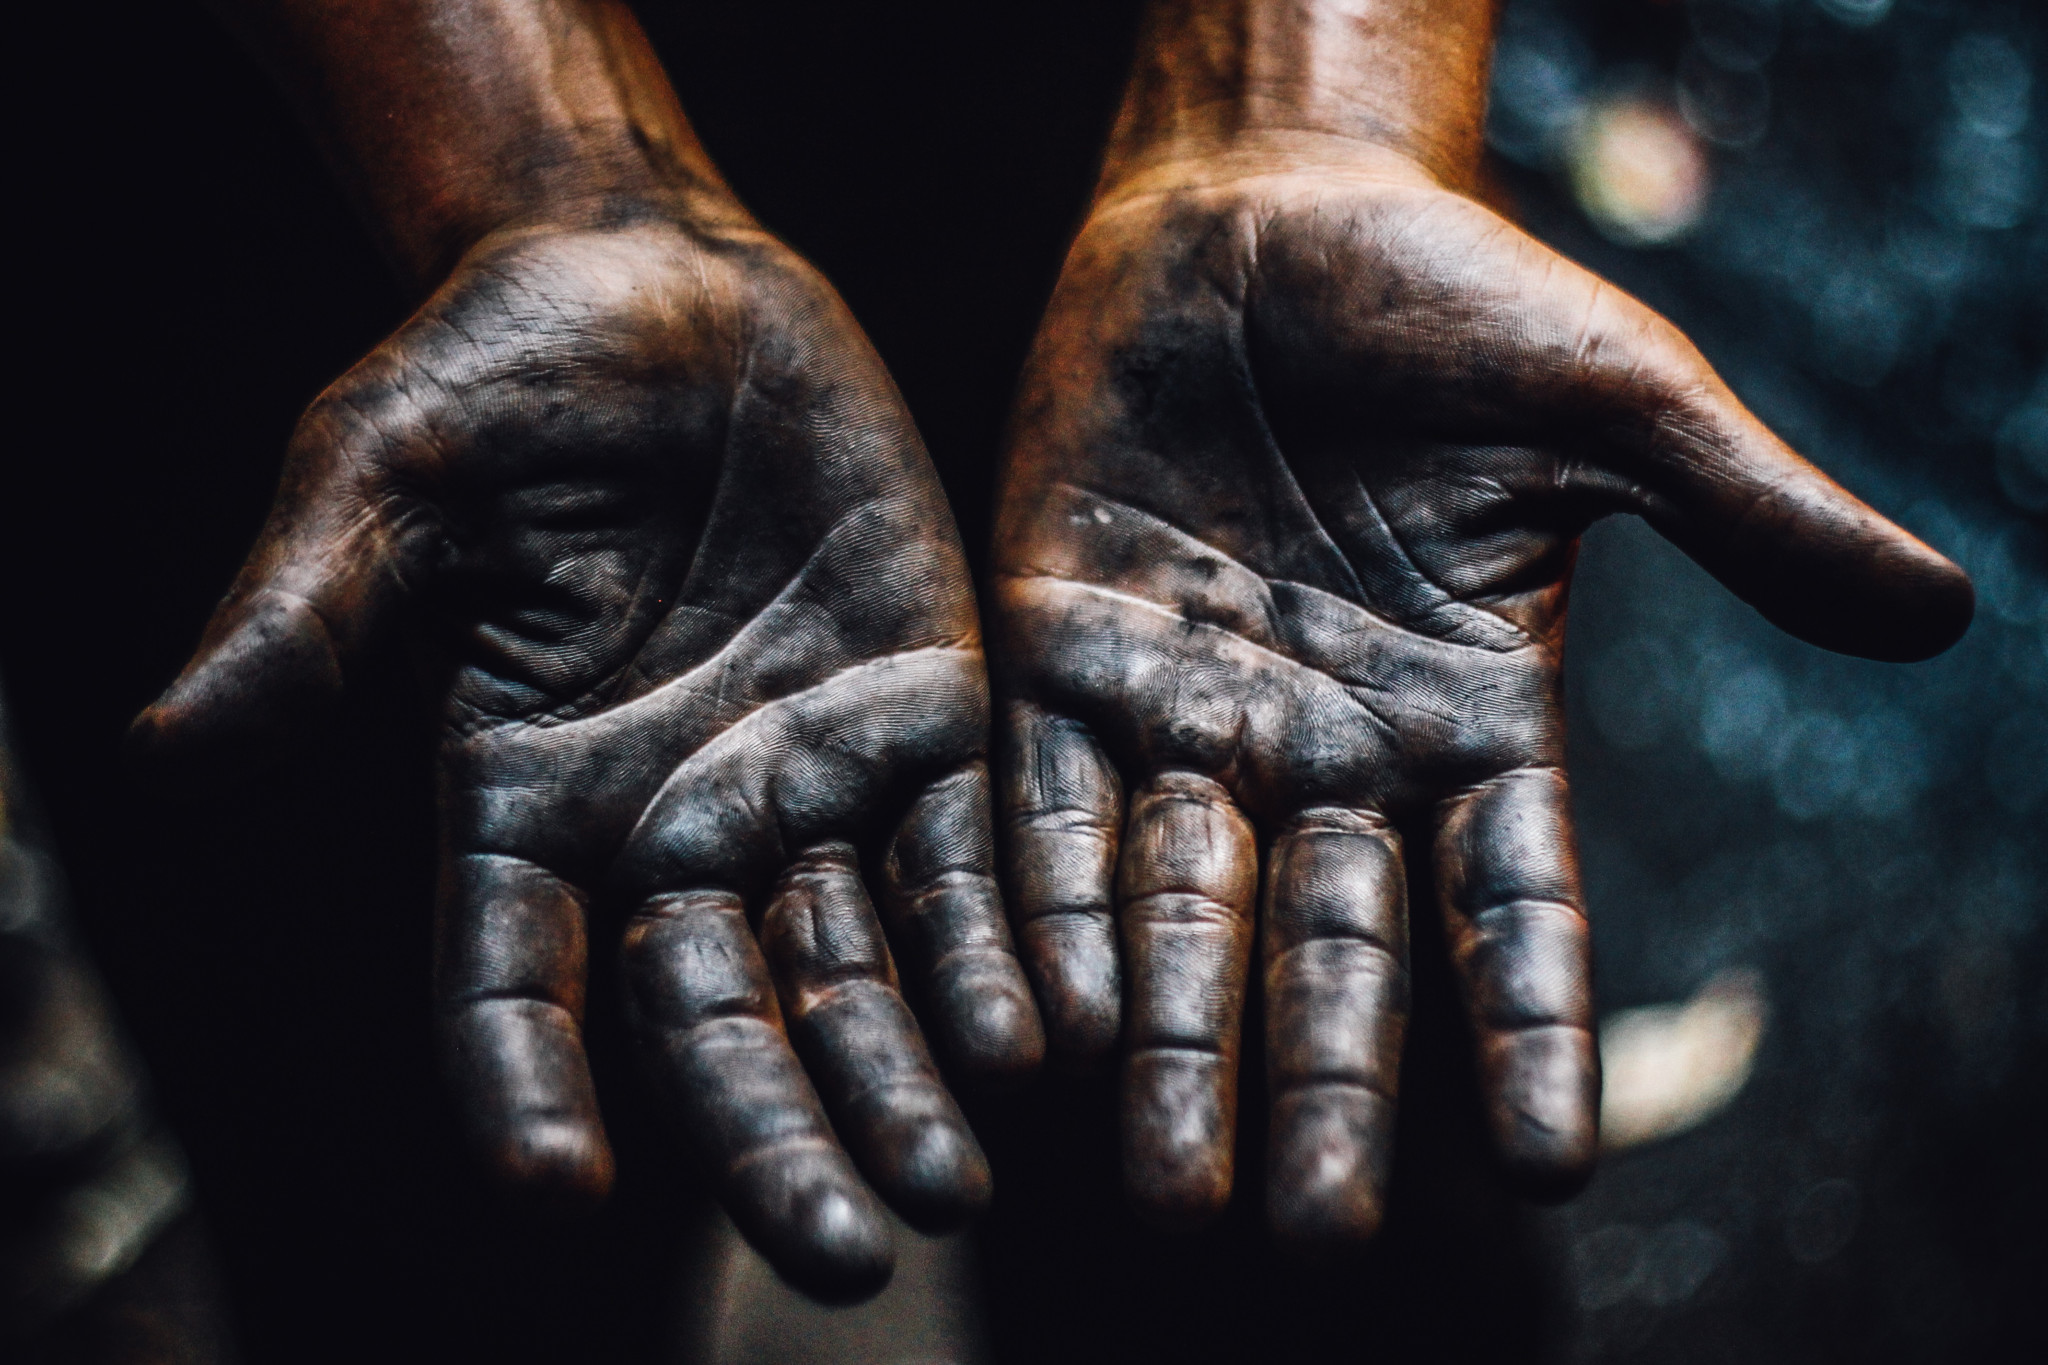 Hands Of Blacksmith